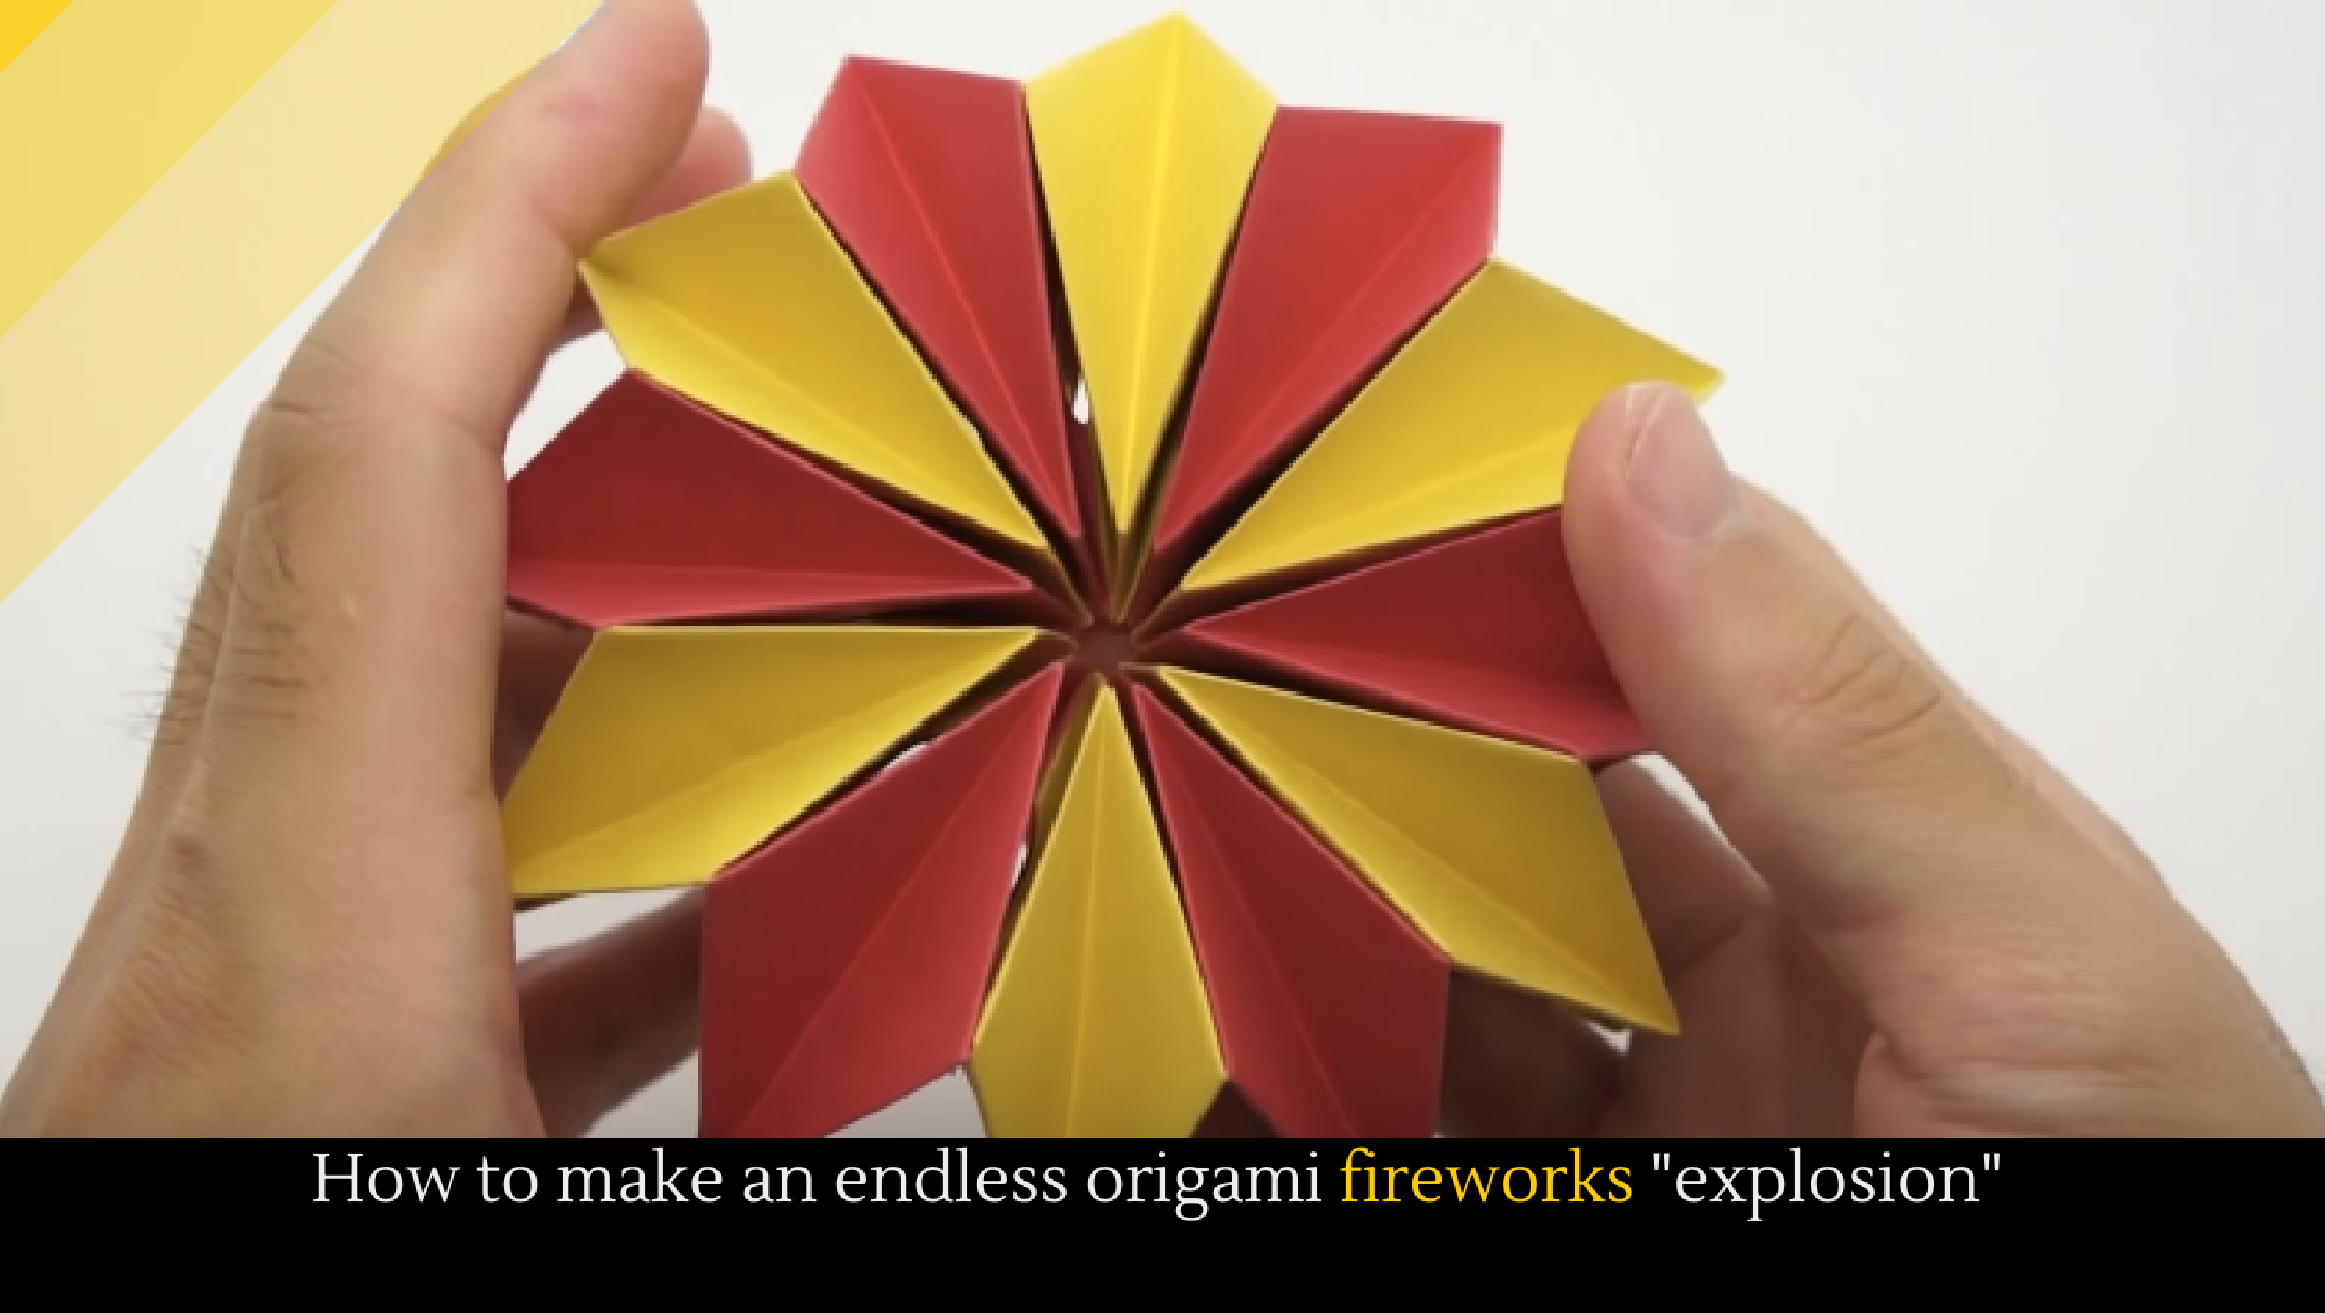 Origami Fireworks Diagram How To Make An Endless 2325x1313